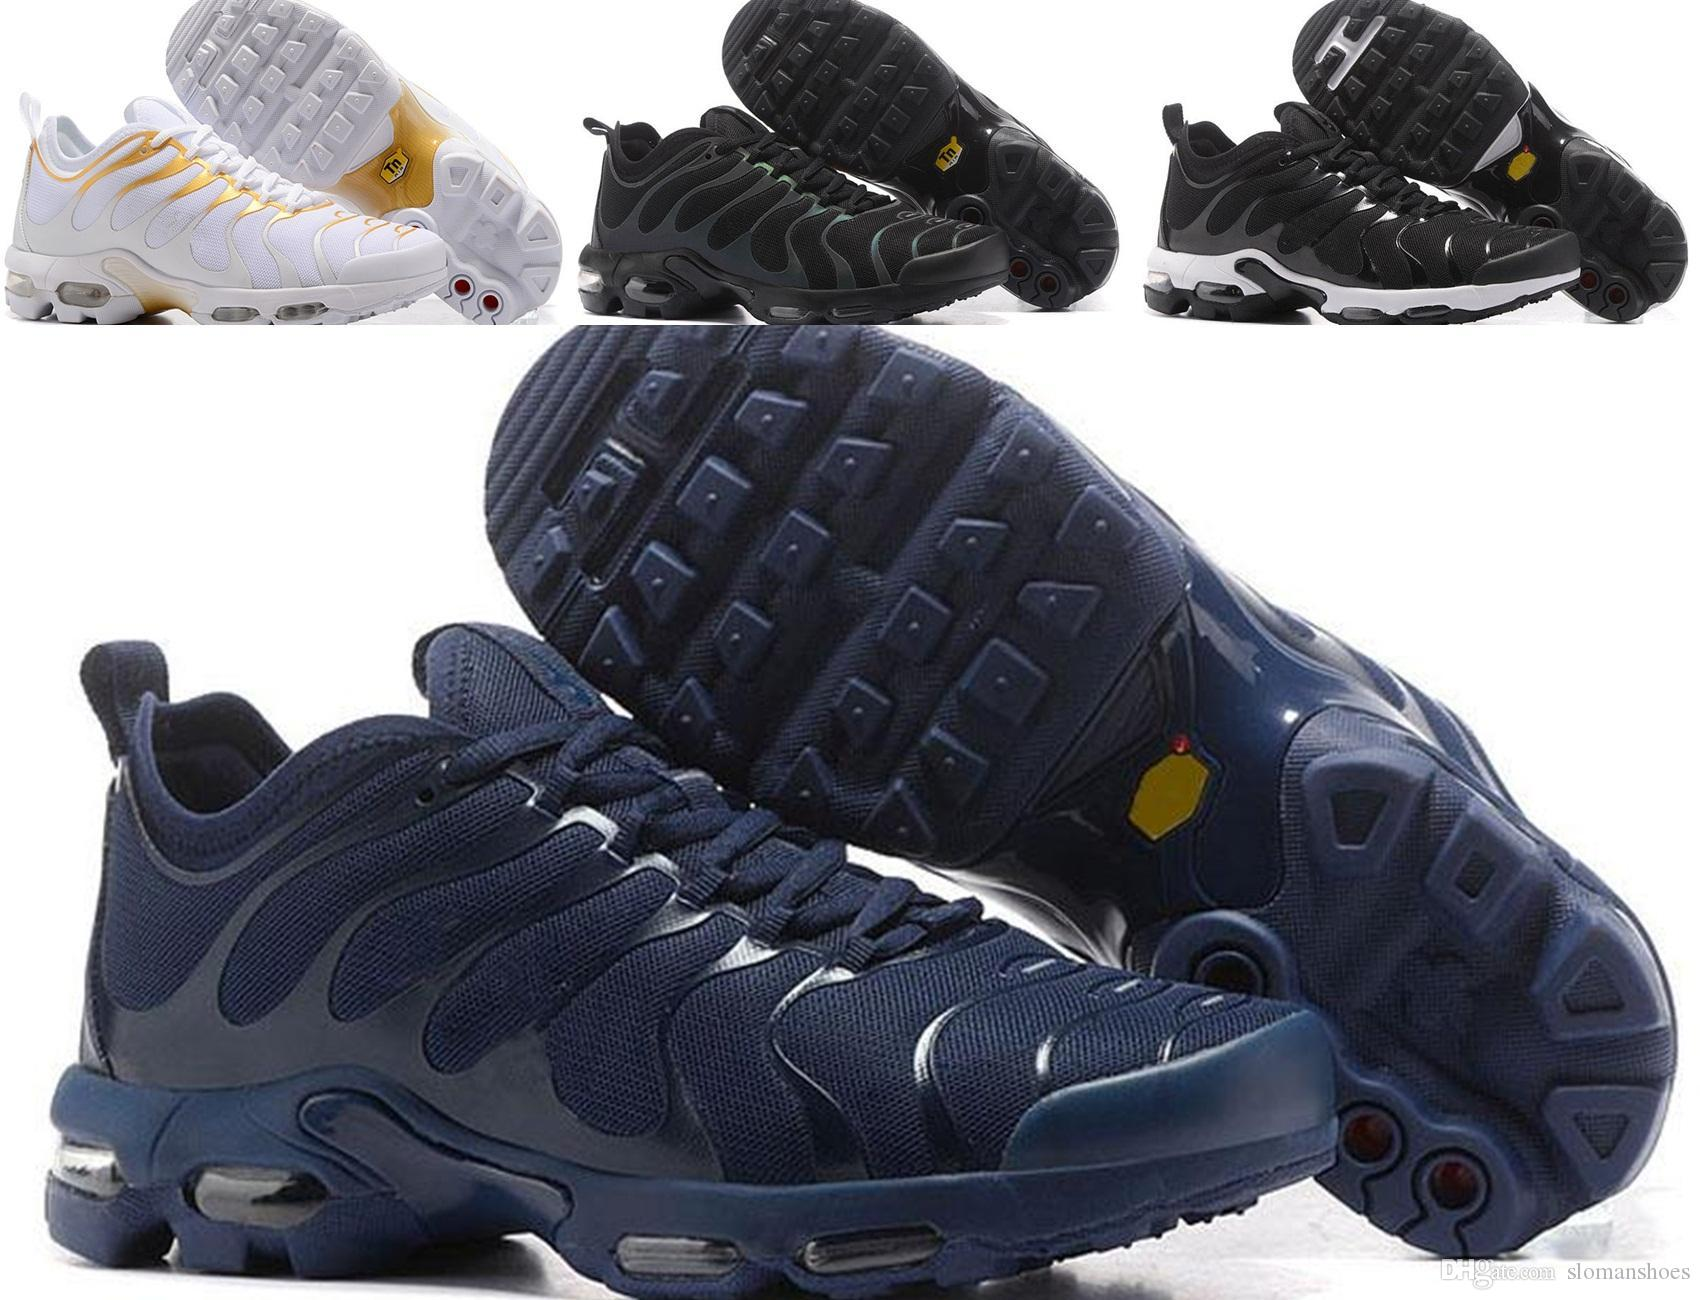 Vapormax TN Plus Running Shoes 2018 Men Outdoor Run Shoes Black White Sport Walking Trainers Hiking Sports Athletic Sneakers EUR40-45 free shipping visa payment with paypal for sale 7FuvwC55